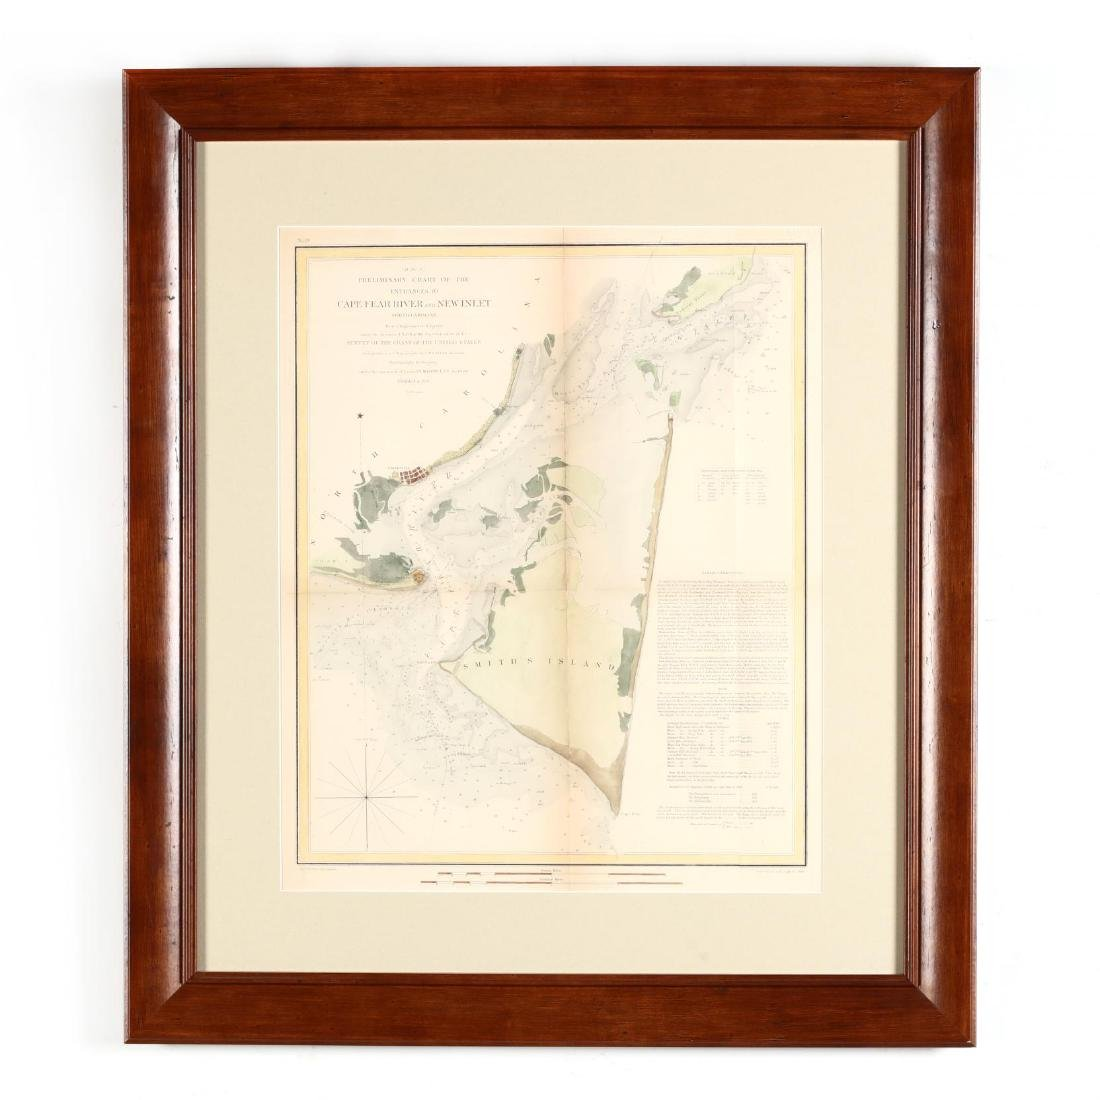 Antique Framed Map of the Cape Fear River and New